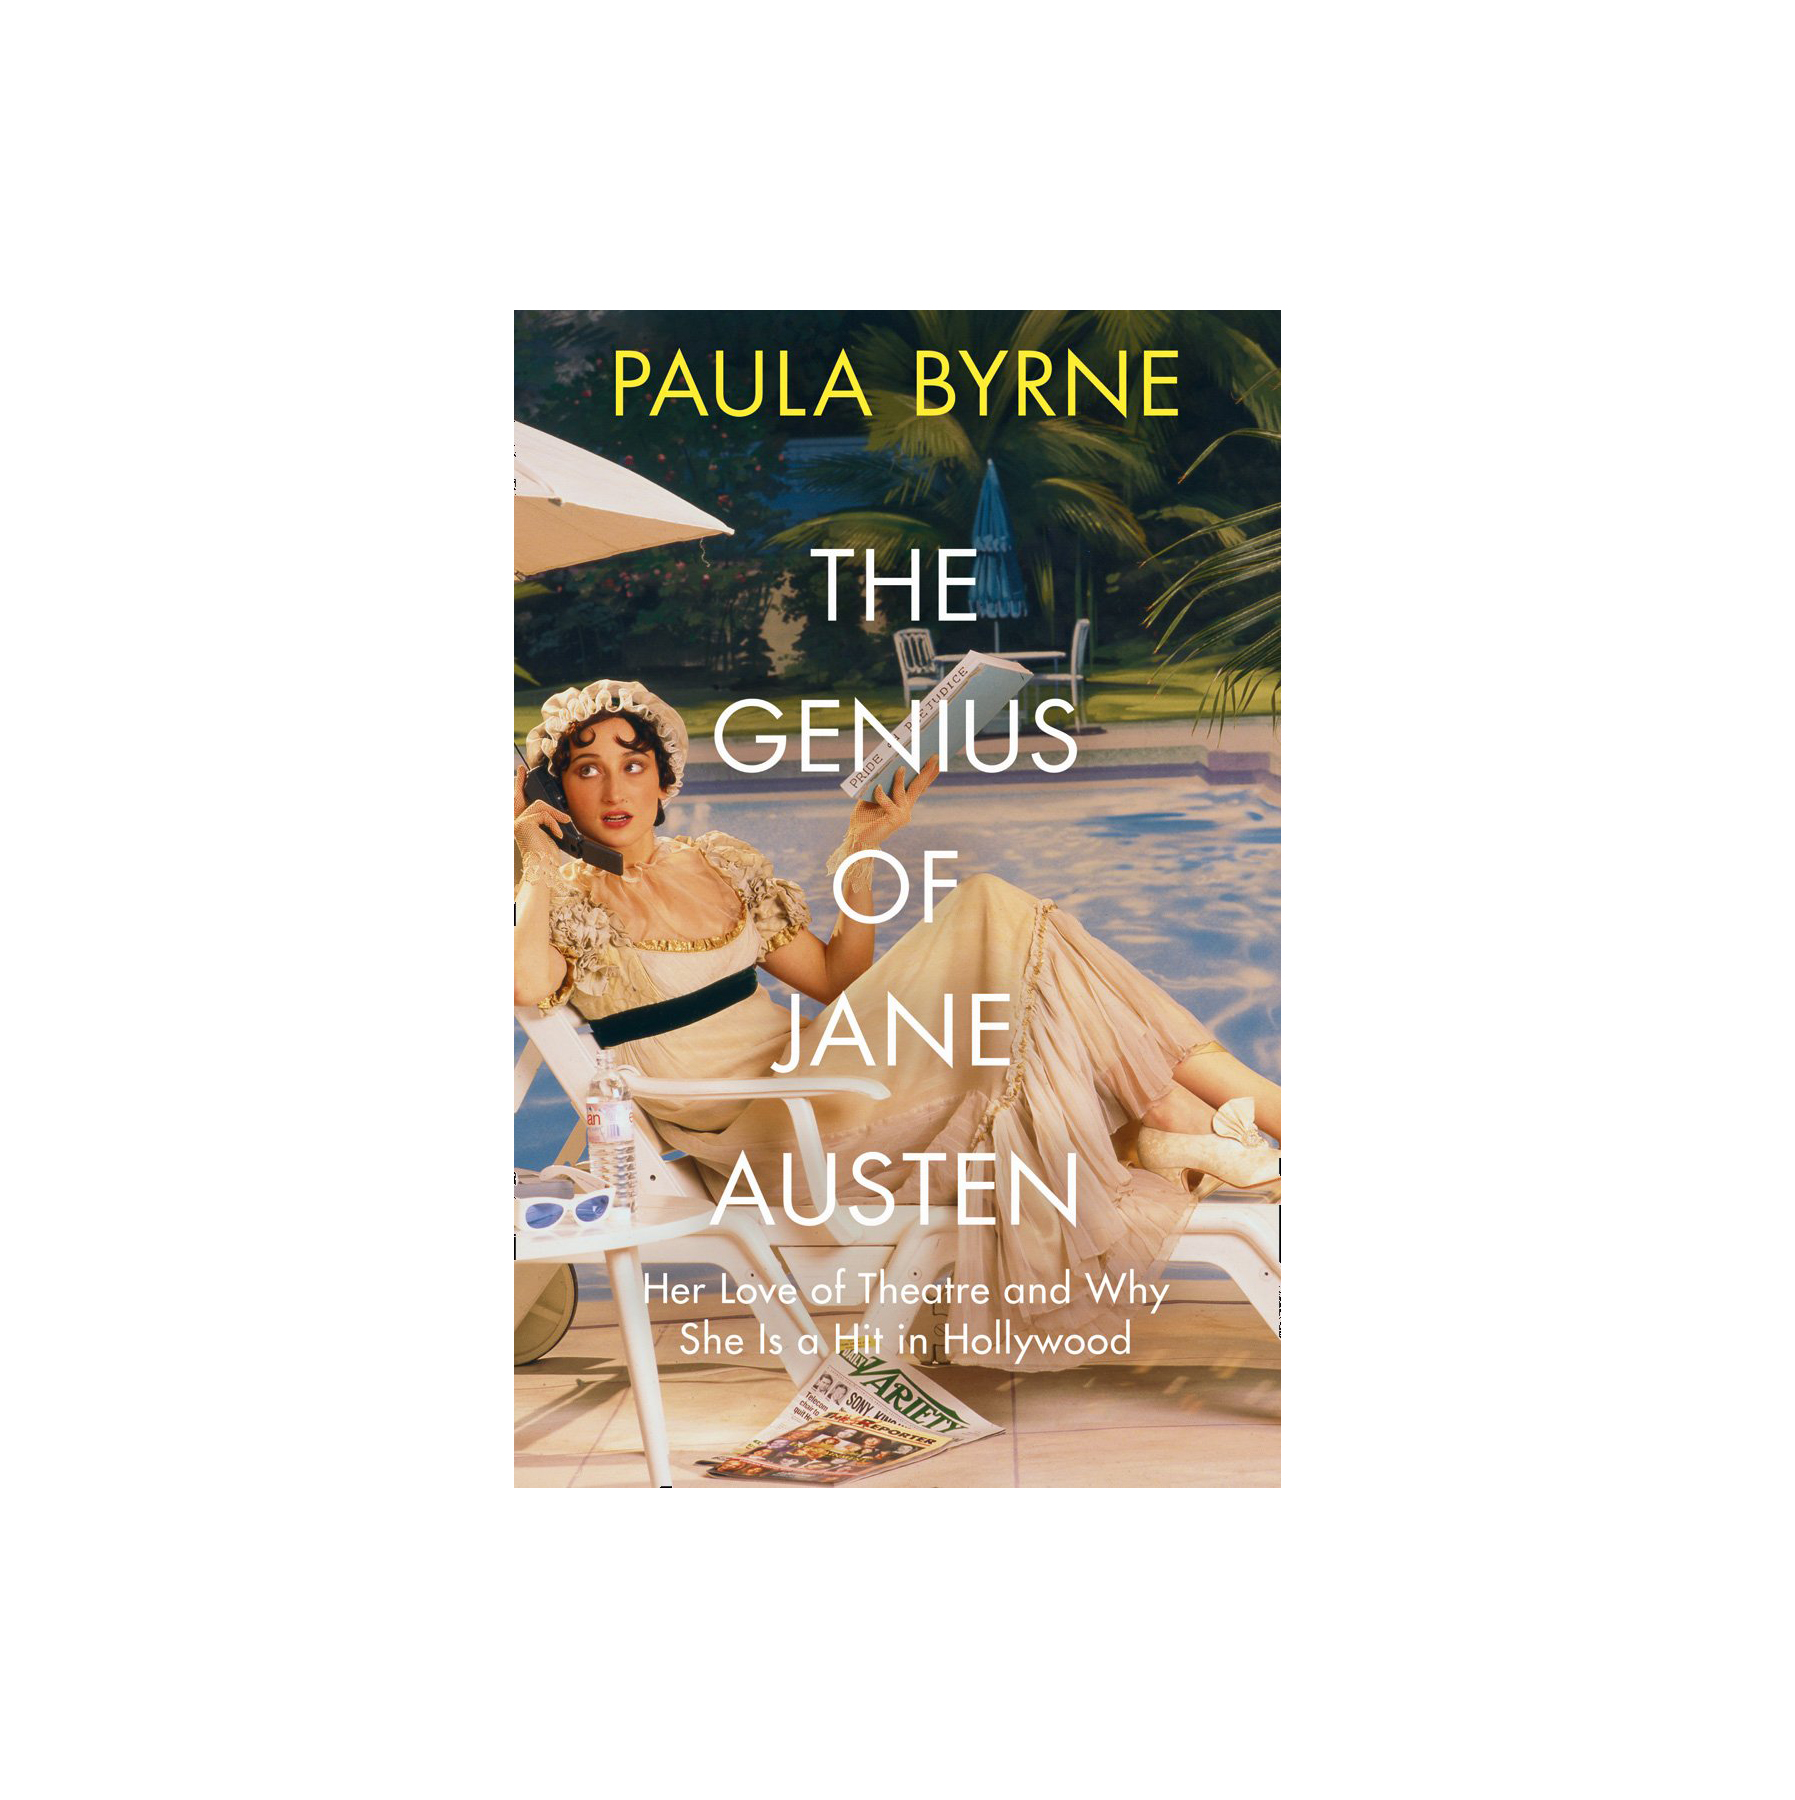 The Genius of Jane Austen: Her Love of Theatre and Why She Works in Hollywood, by Paula Byrne